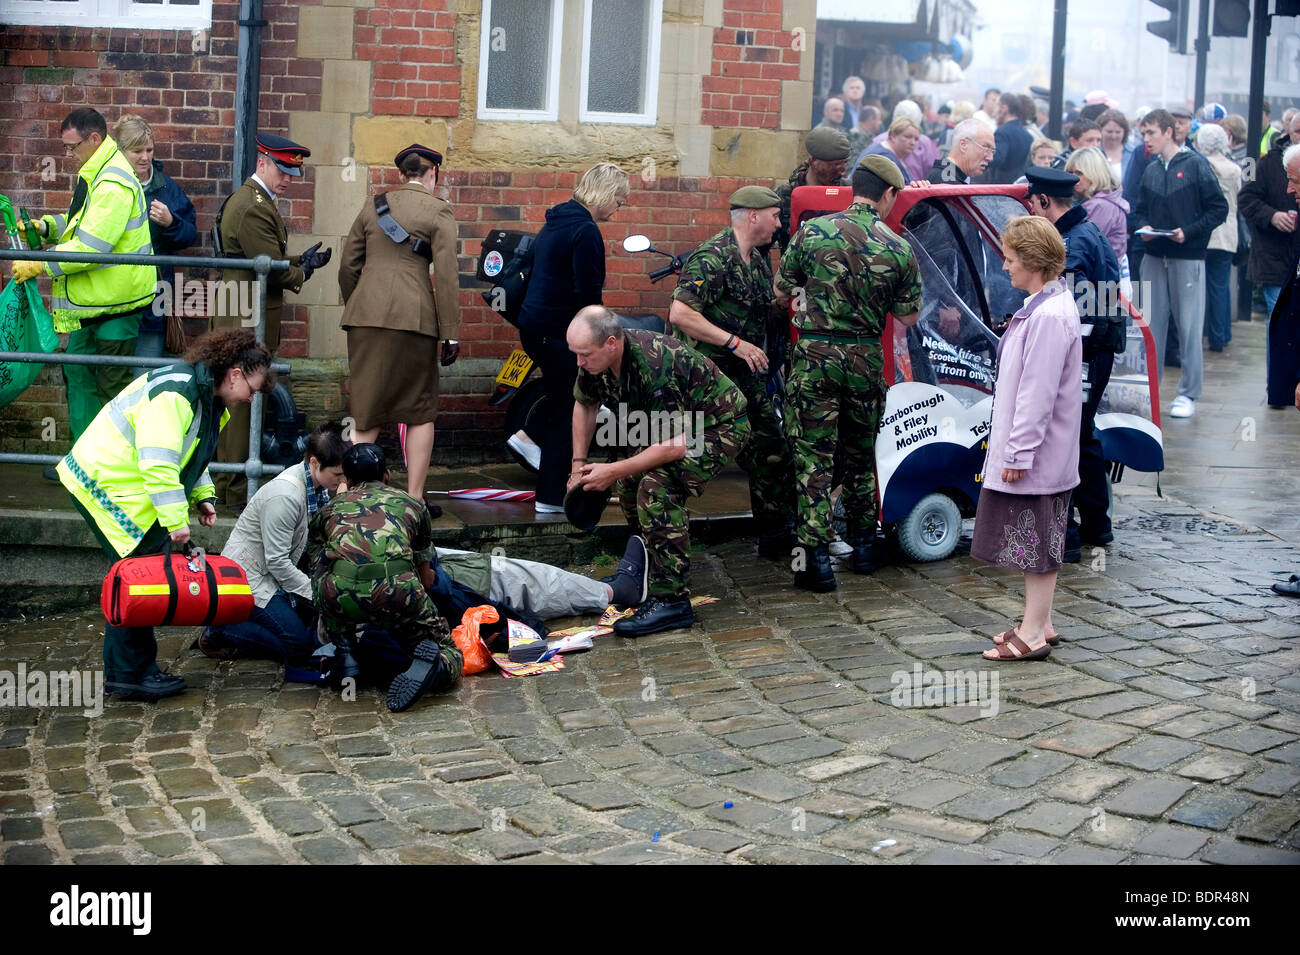 An elderly man is treated by emergency services and the armed forces after his mobility scooter toppled over. Stock Photo